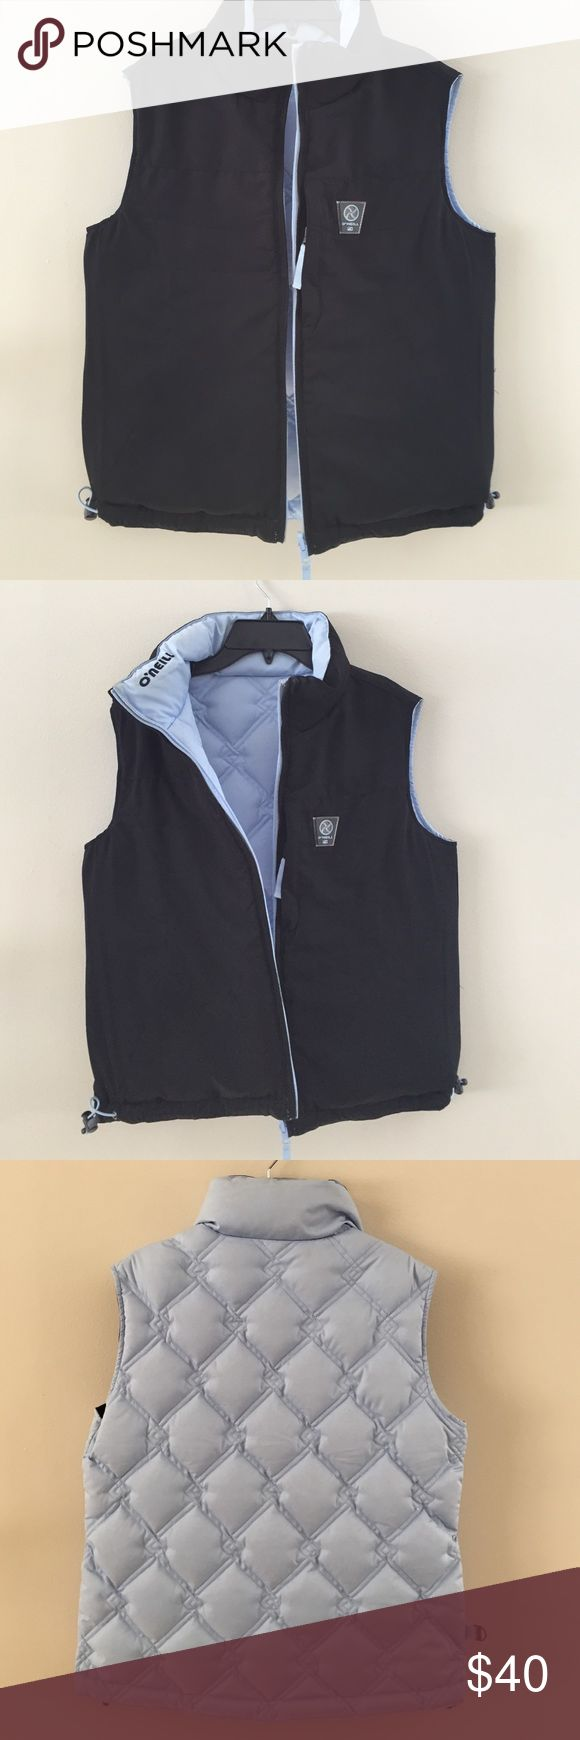 O'Neil Reversible Puff Vest 100% Polyester Shell, Woman's 8, gently worn, great condition, plenty of good wear left. Baby blue and black. O'Neill Jackets & Coats Vests